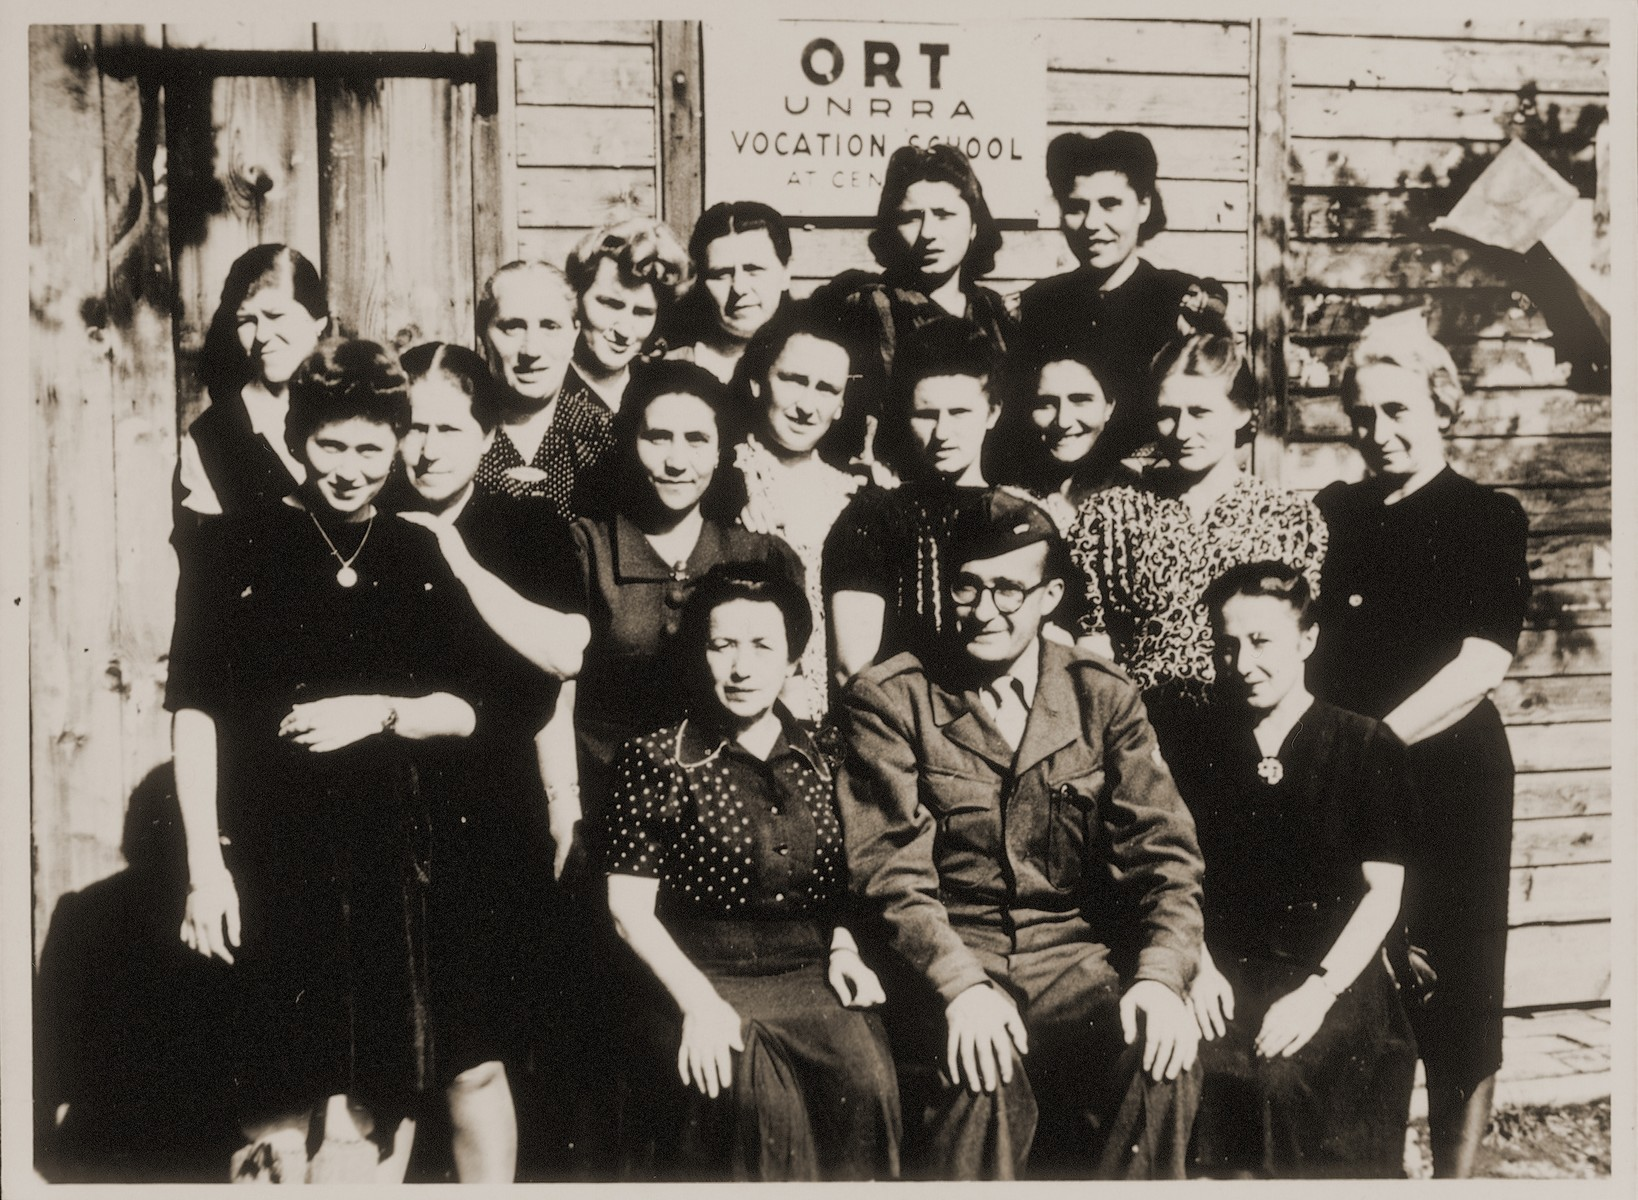 Group portrait of young Jewish DP women with their male instructor in front of an ORT (Organization for the Rehabilitation through Training) vocational training center in Germany.